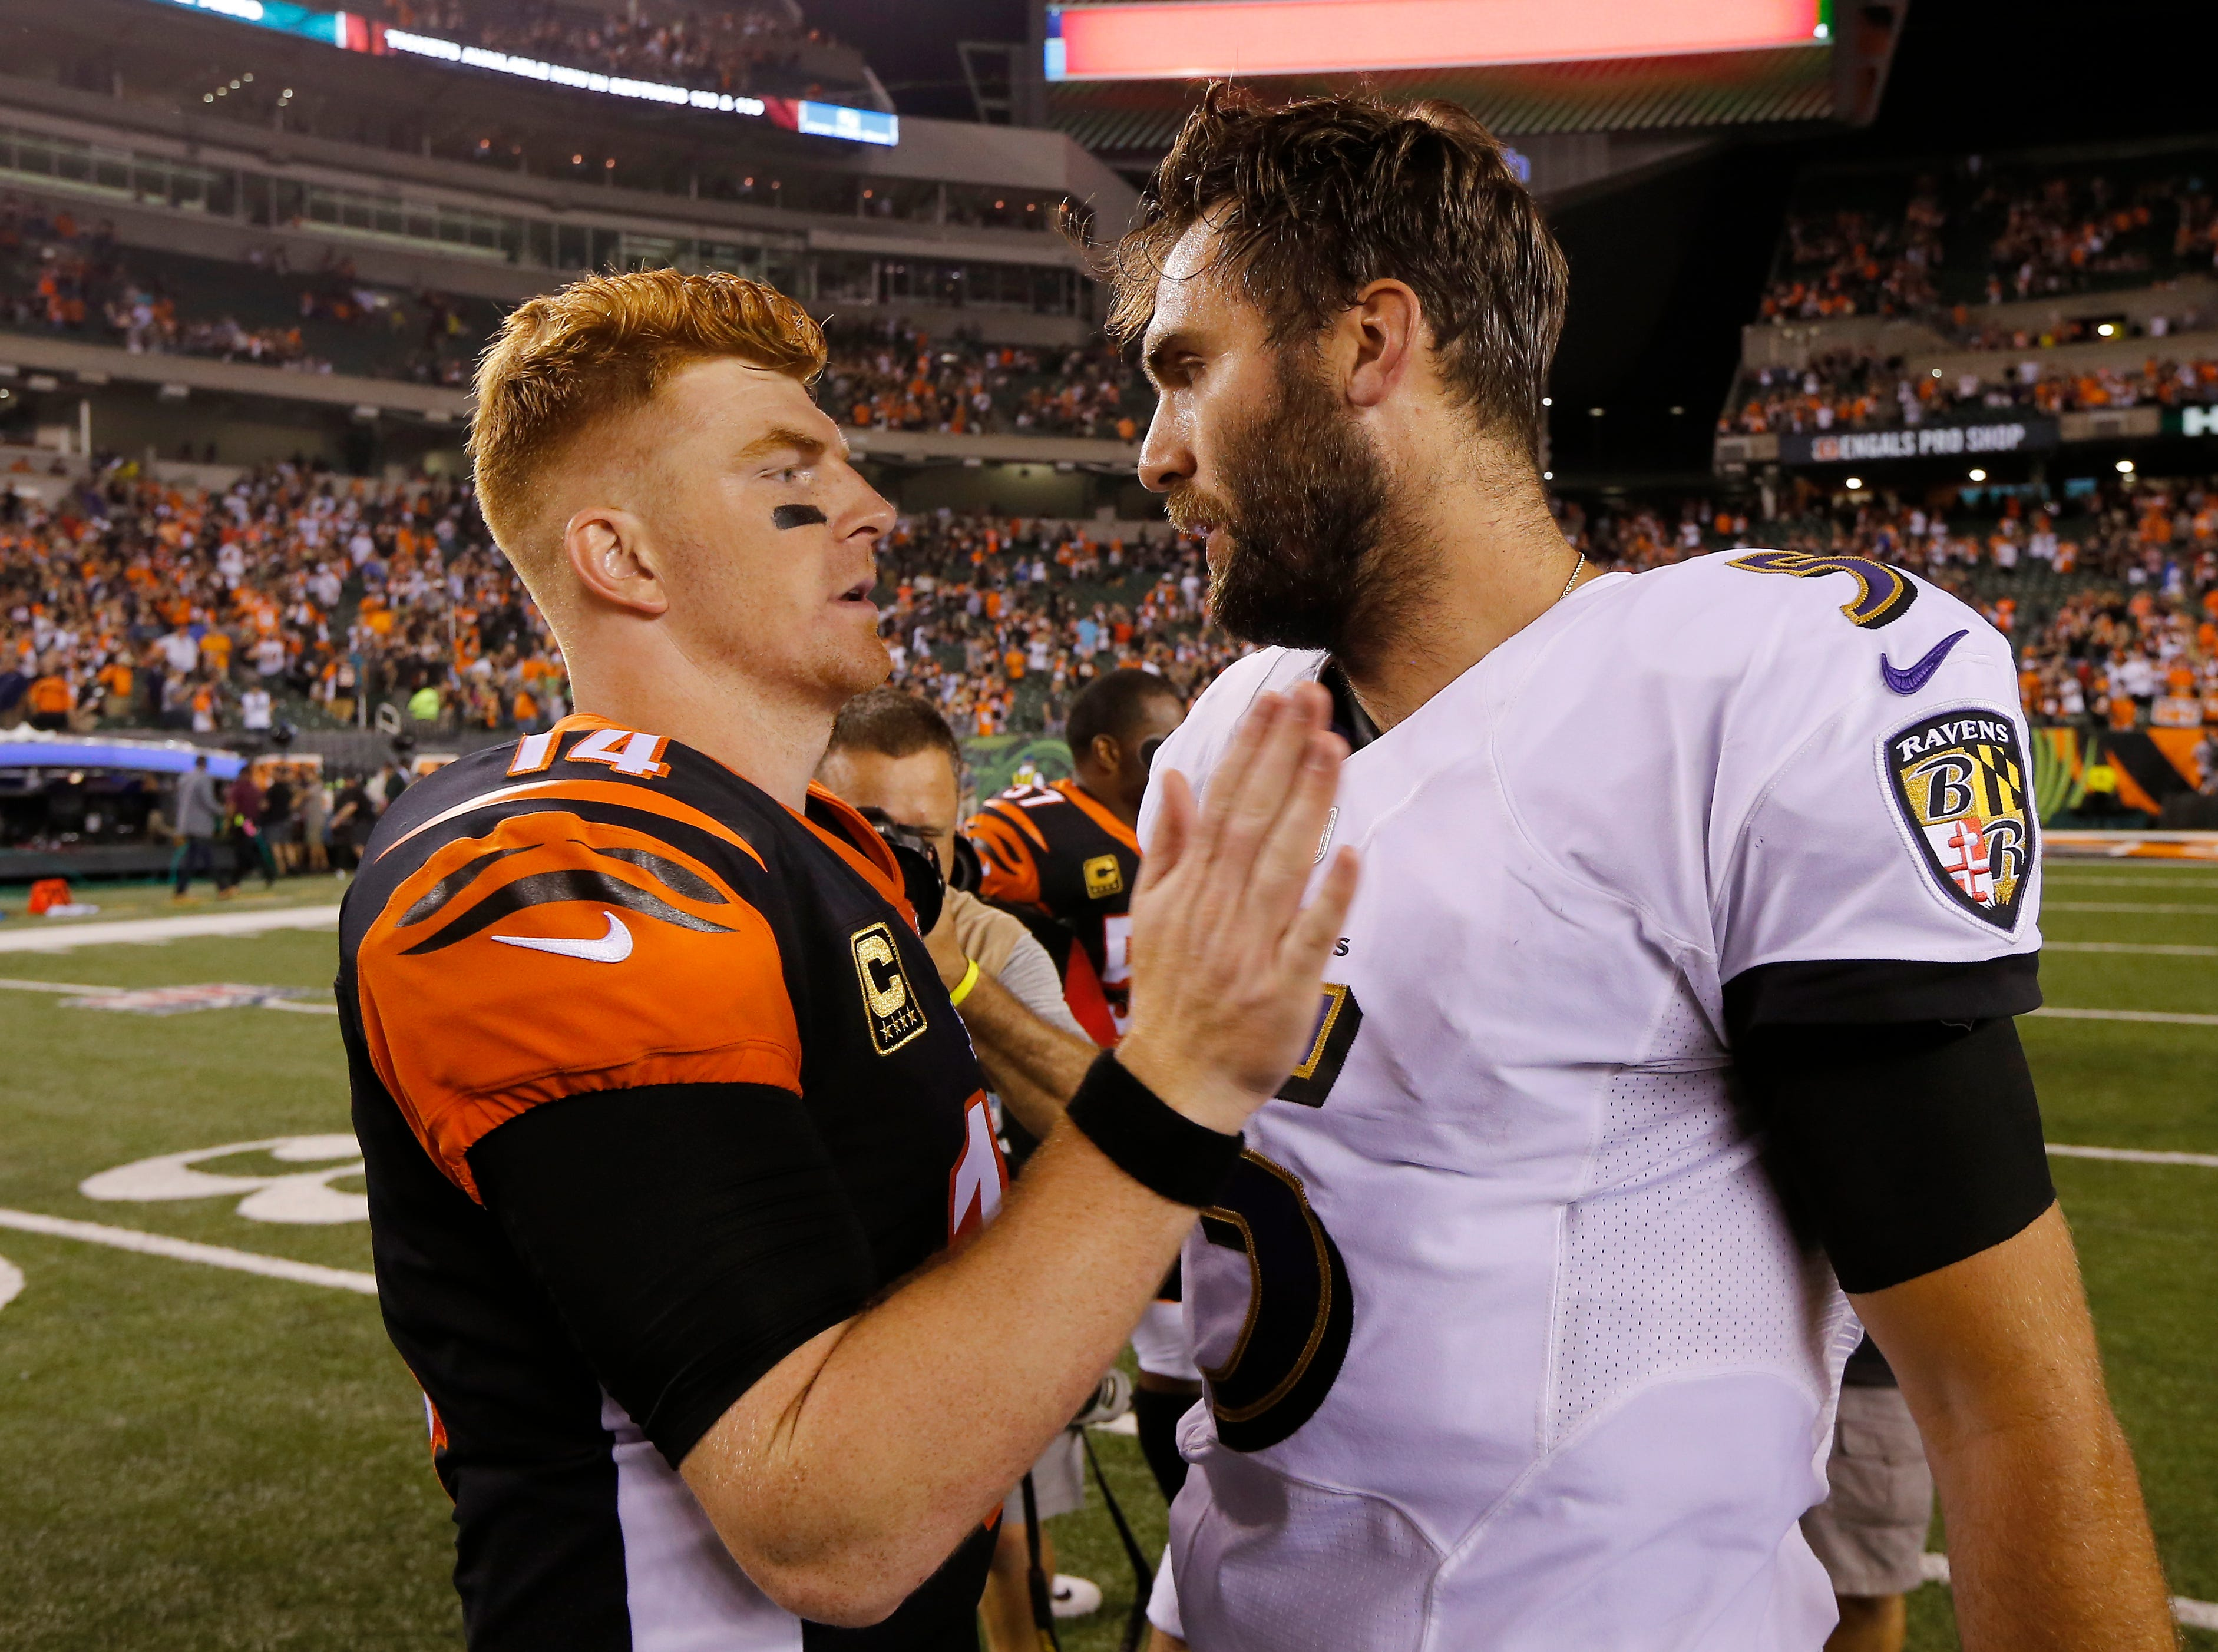 Cincinnati Bengals quarterback Andy Dalton (14) and Baltimore Ravens quarterback Joe Flacco (5) shake hands after the fourth quarter of the NFL Week 2 game between the Cincinnati Bengals and the Baltimore Ravens at Paul Brown Stadium in downtown Cincinnati on Thursday, Sept. 13, 2018. The Bengals improved to 2-0 on the season with a 34-23 win over the Ravens.